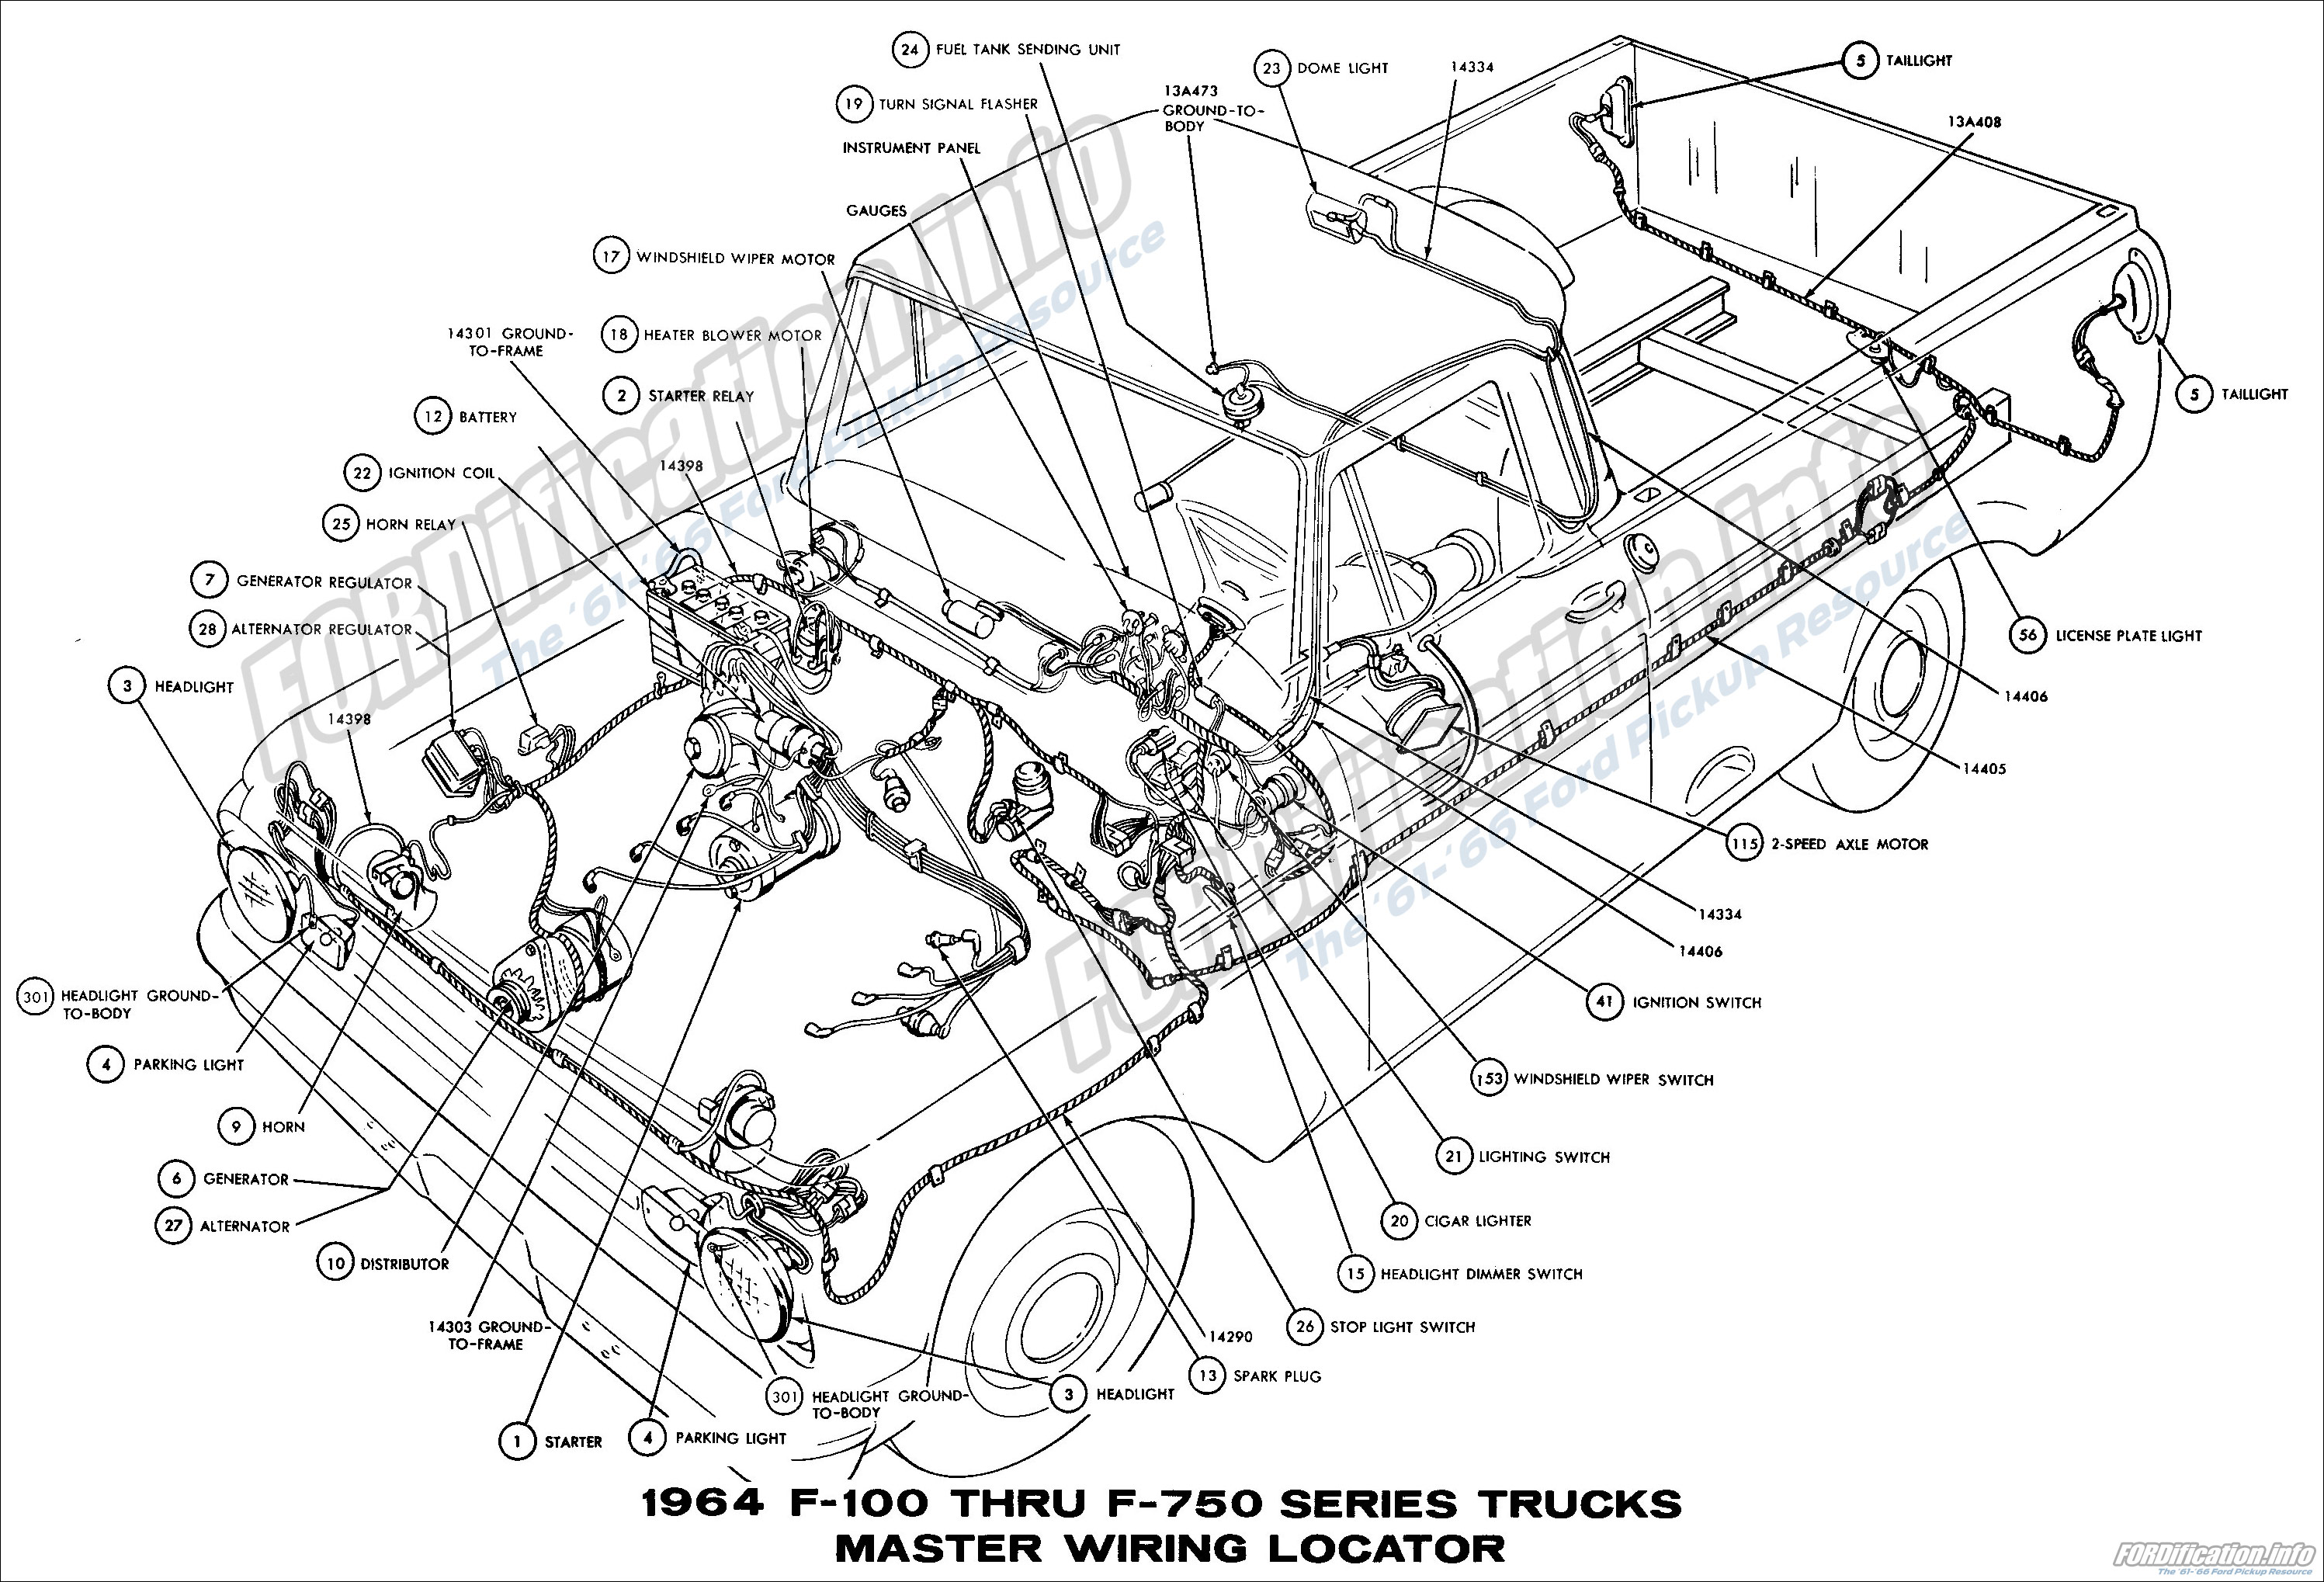 Wiring Diagram 1964 Ford F100 : 29 Wiring Diagram Images